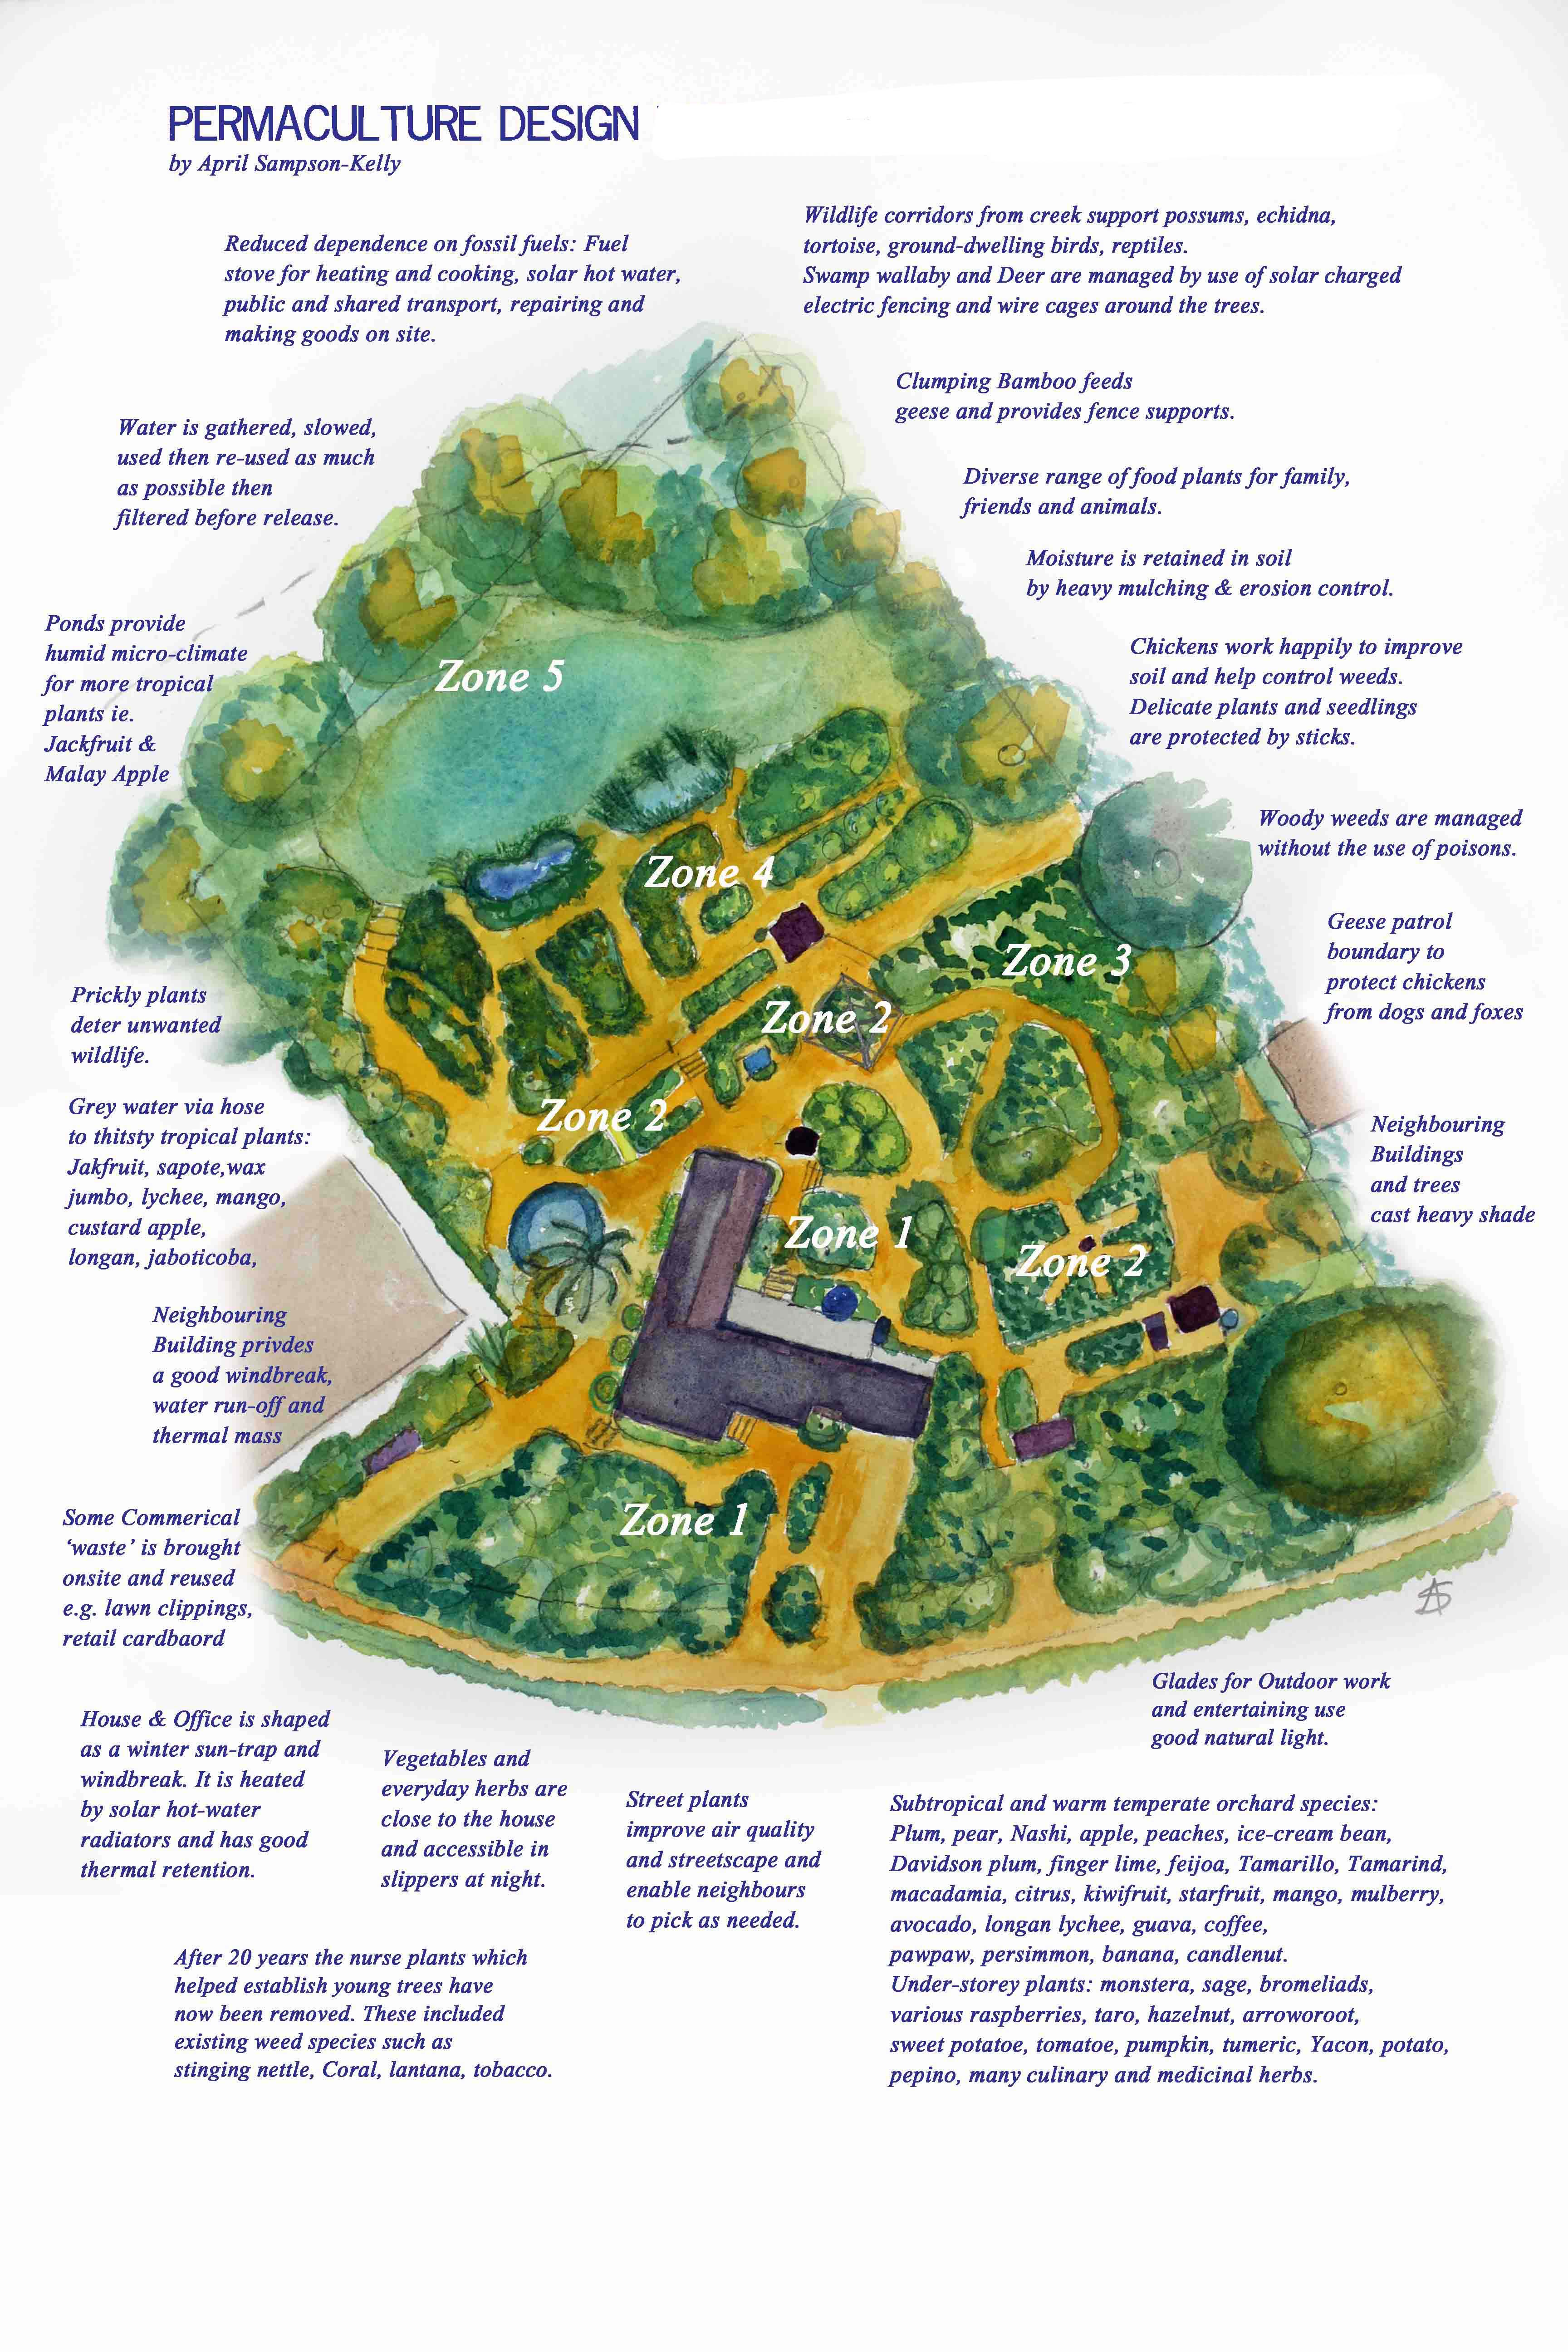 Our Site Silk Farm Permaculture Visions Online Institute